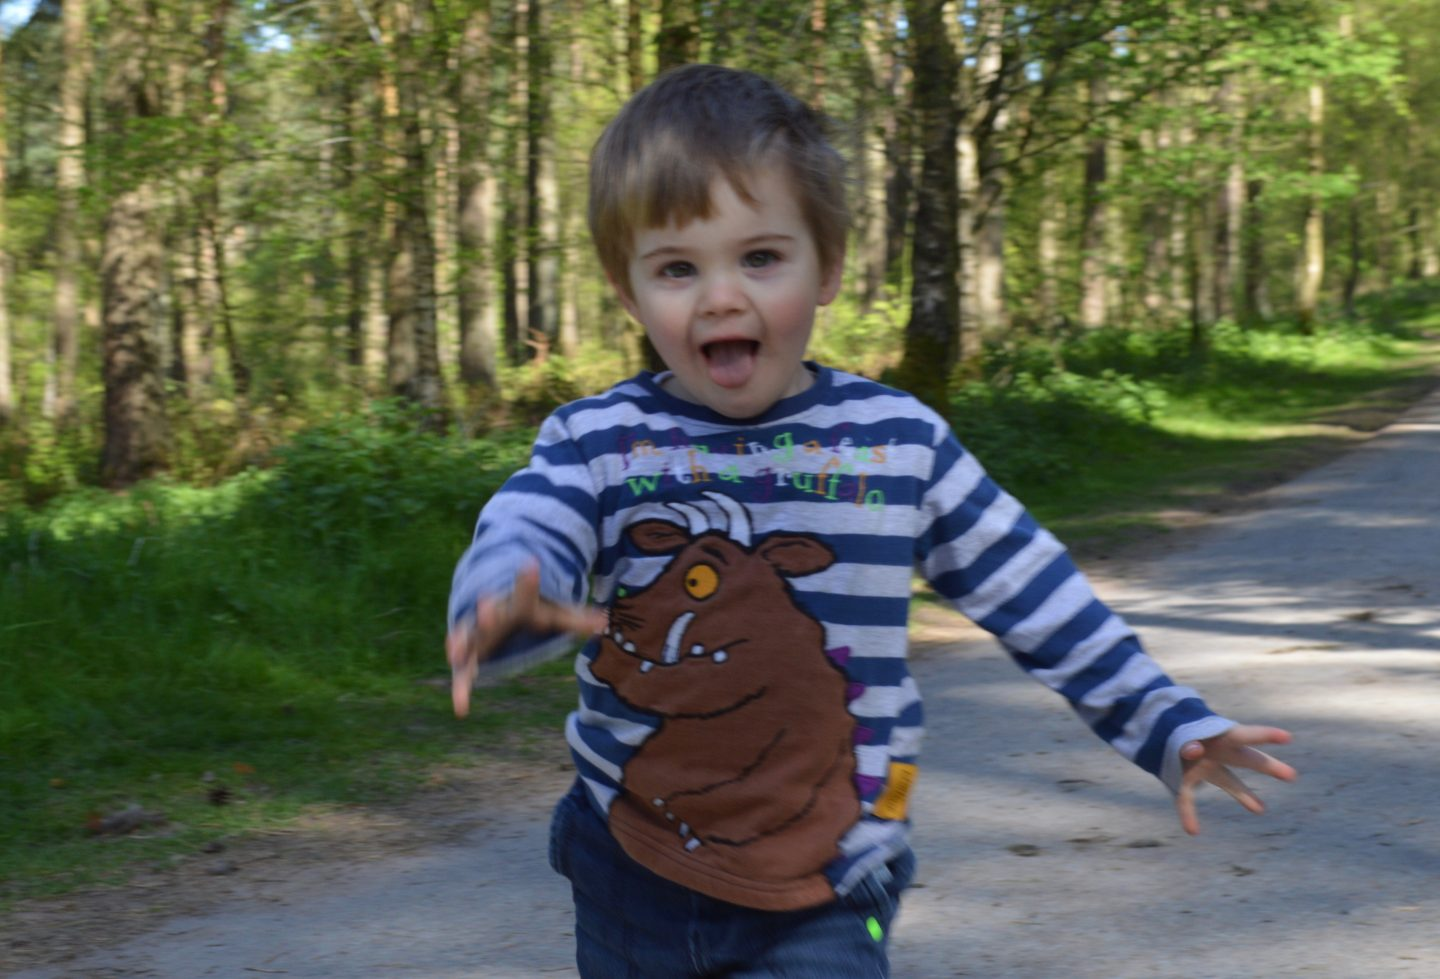 Fun for Tots: Activities for 2 Year Olds at Center Parcs, Whinfell Forest